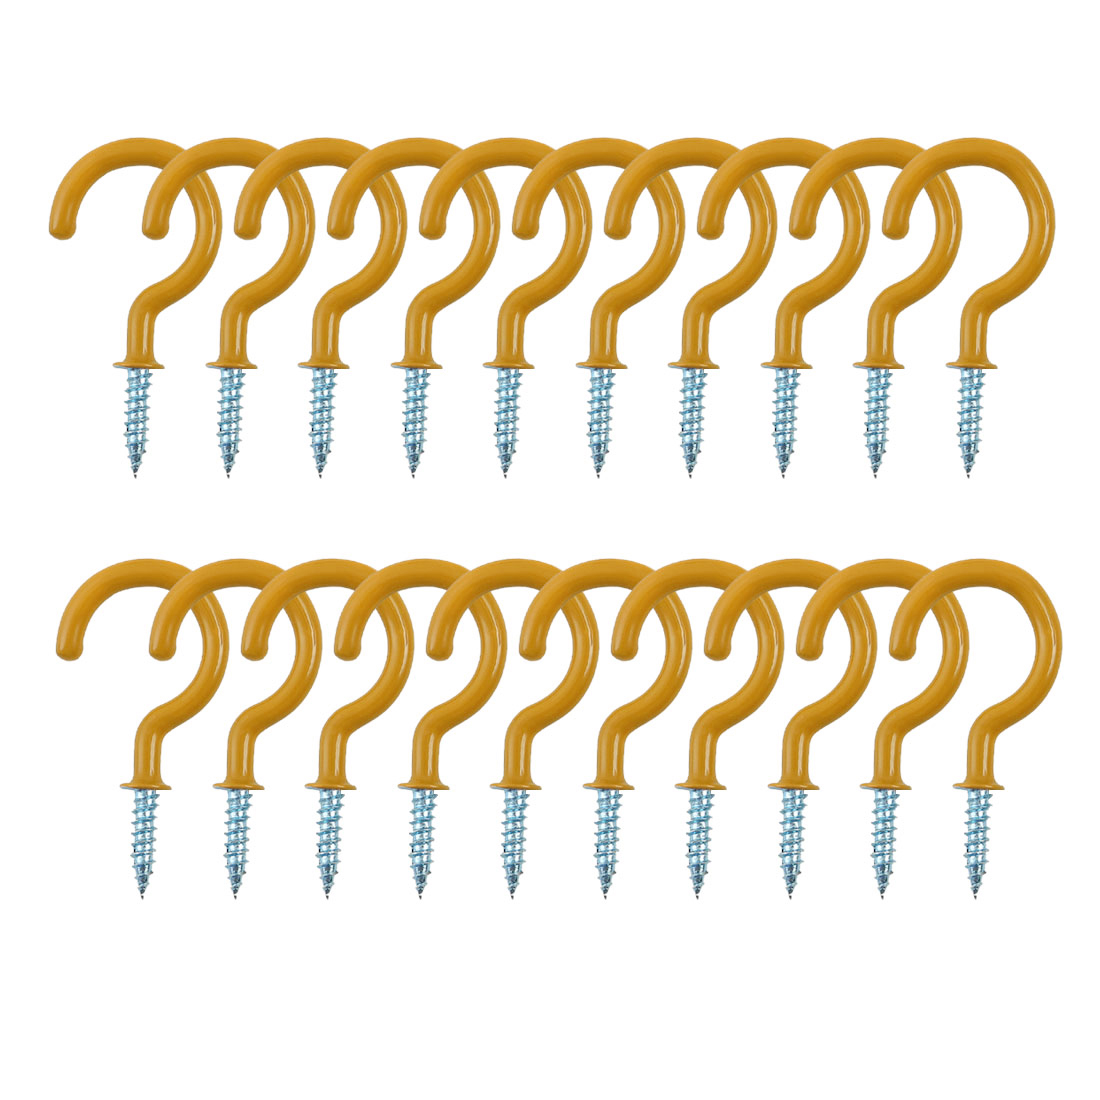 20pcs Cup Hooks 1-1/4 Inch Metal with Vinyl Coated Screw in Holder Yellow